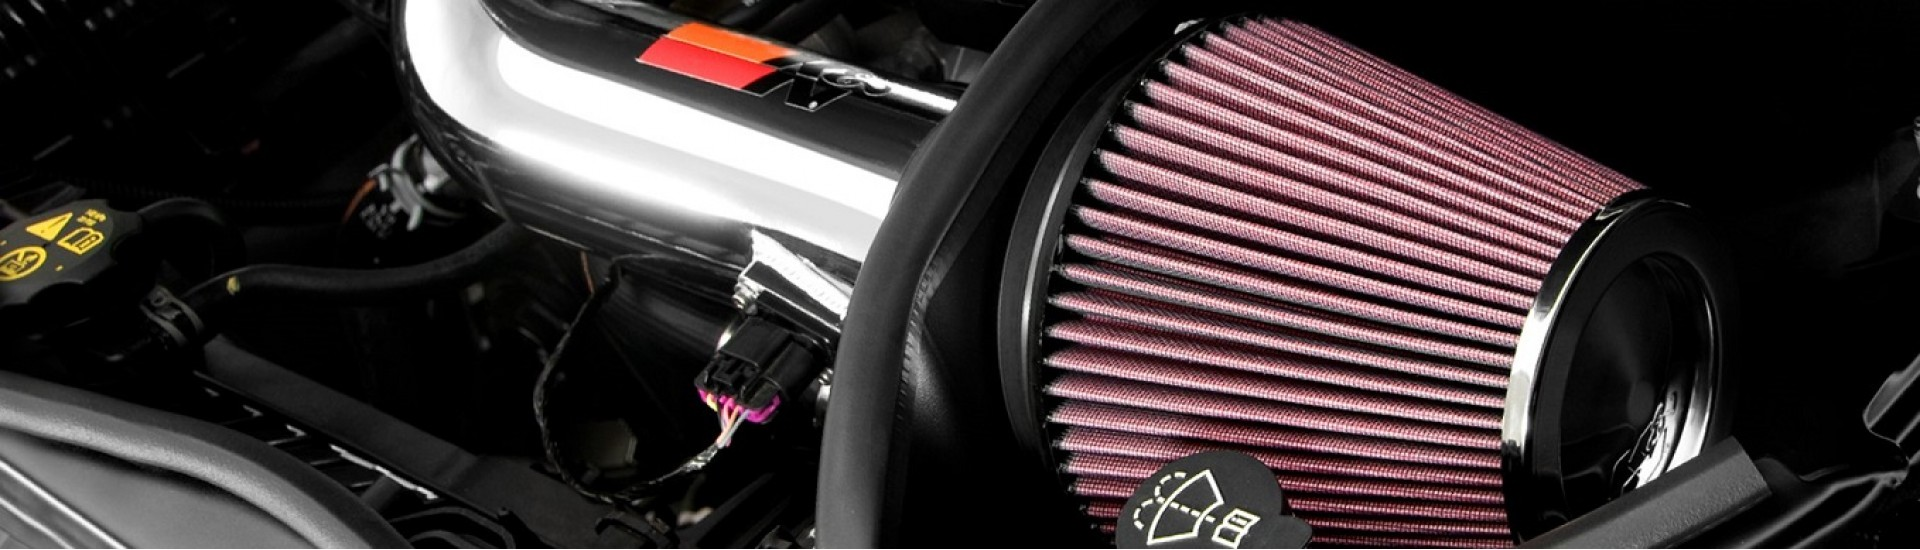 سیستم هواکش ، performance air intake systems